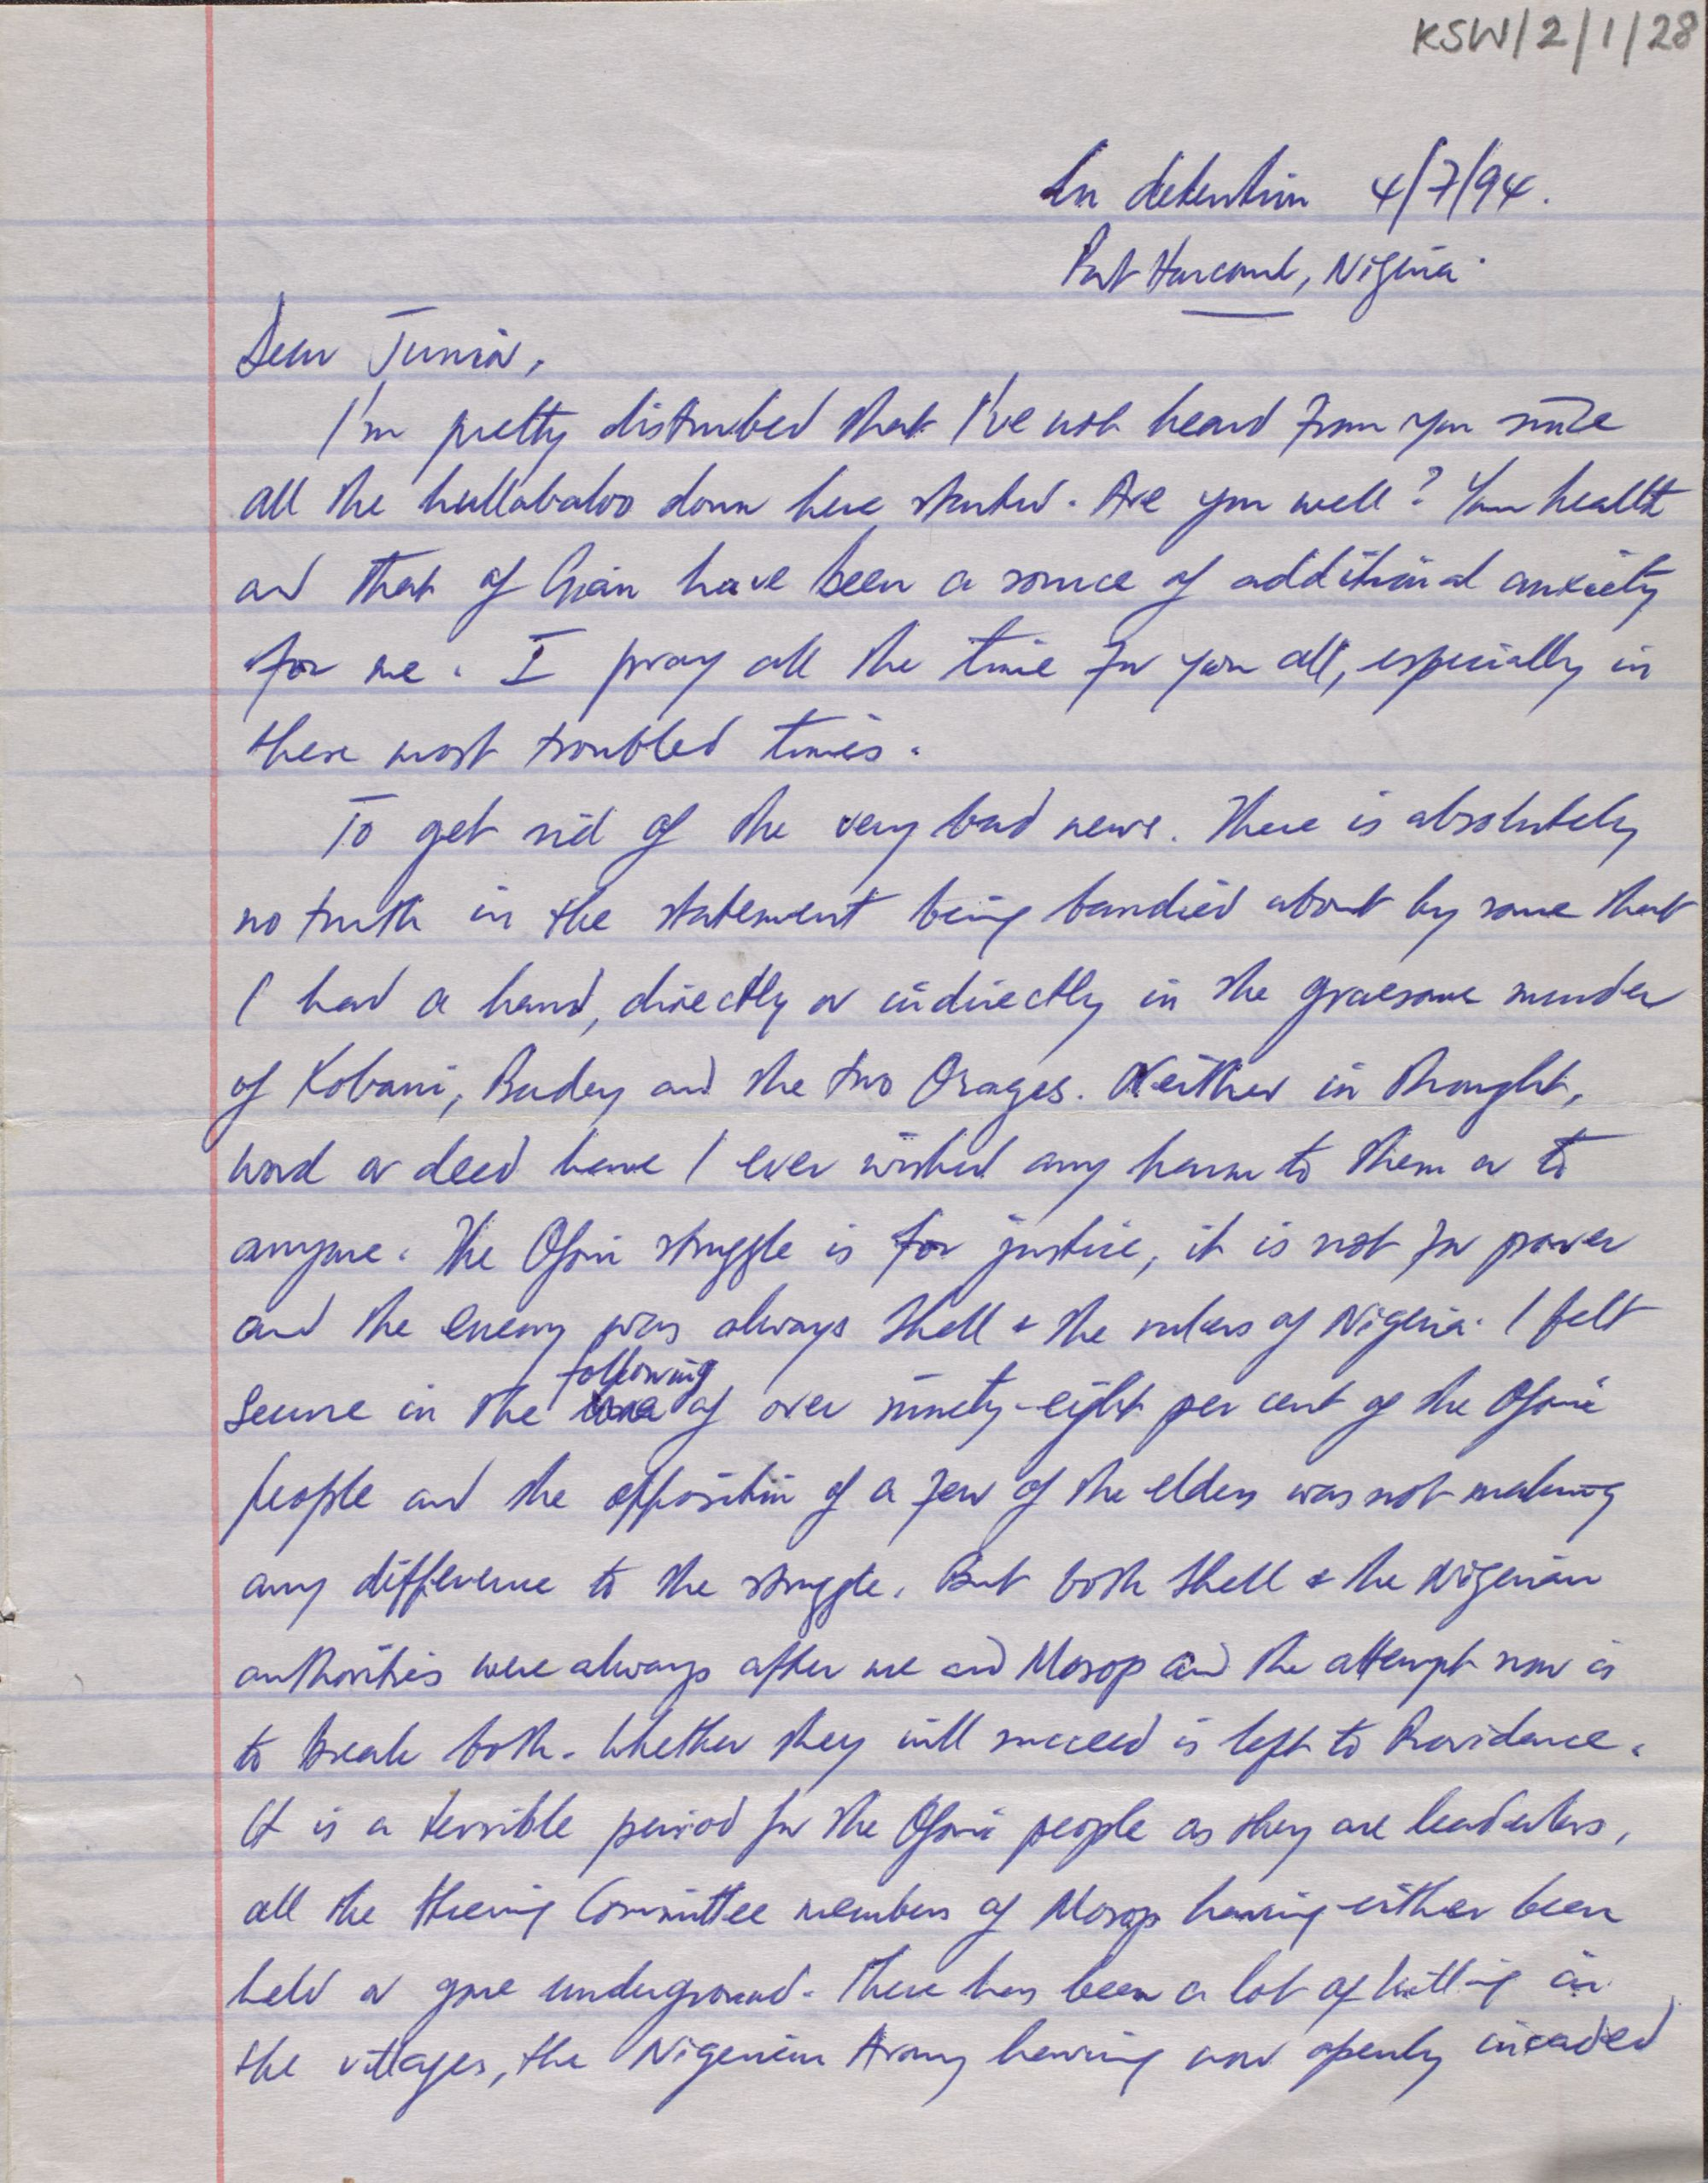 A letter sent from prison by Ken Saro-Wiwa to Ken Saro-Wiwa Jnr, 4 July 1994 before his execution.